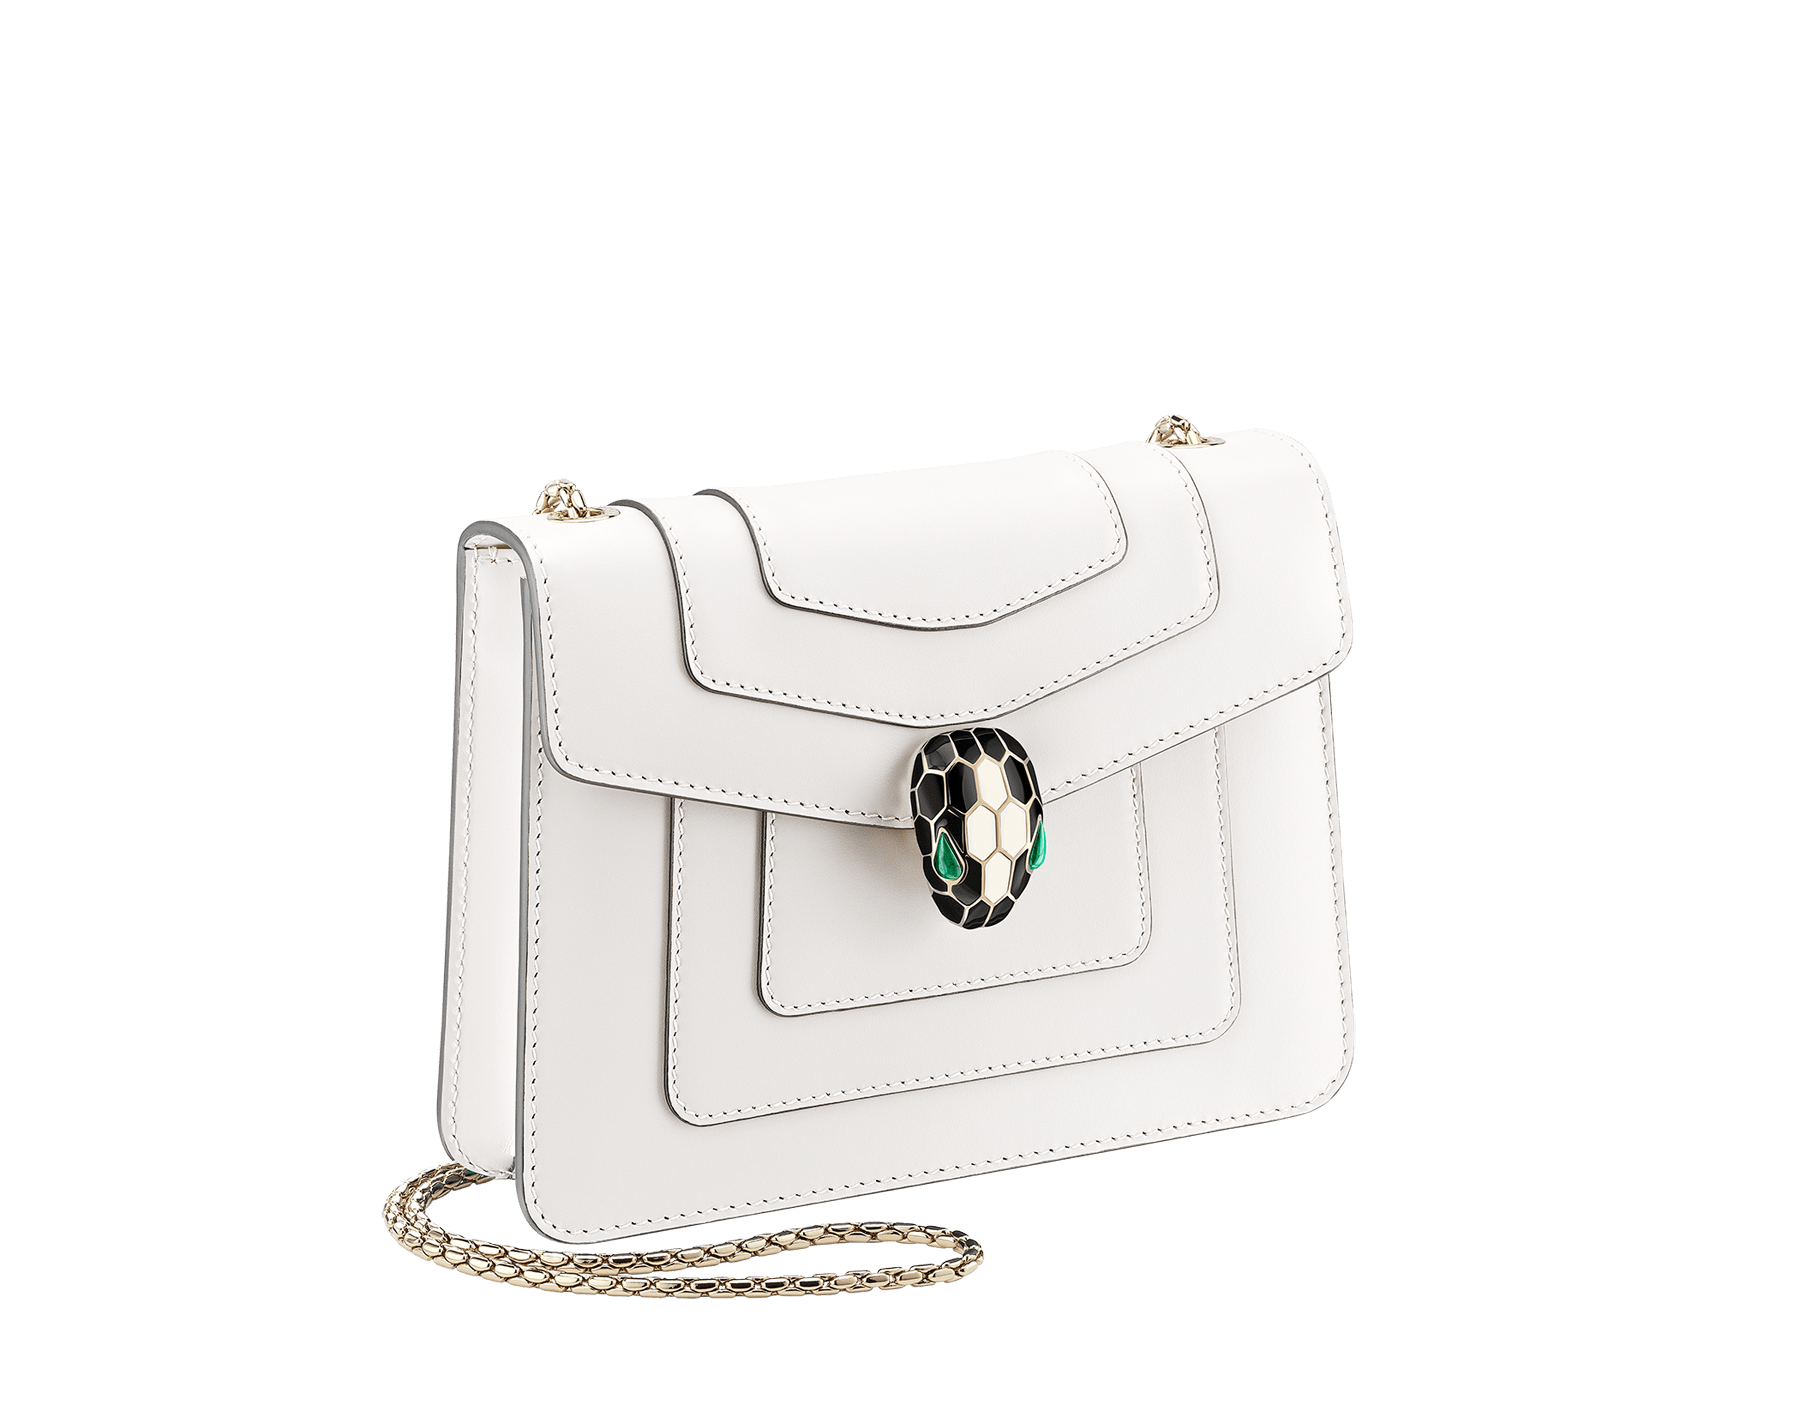 """""""Serpenti Forever"""" crossbody bag in emerald green calf leather with amethyst purple gros grain internal lining. Iconic snakehead closure in light gold plated brass enriched with black and white agate enamel, and green malachite eyes. 422-CLa image 2"""